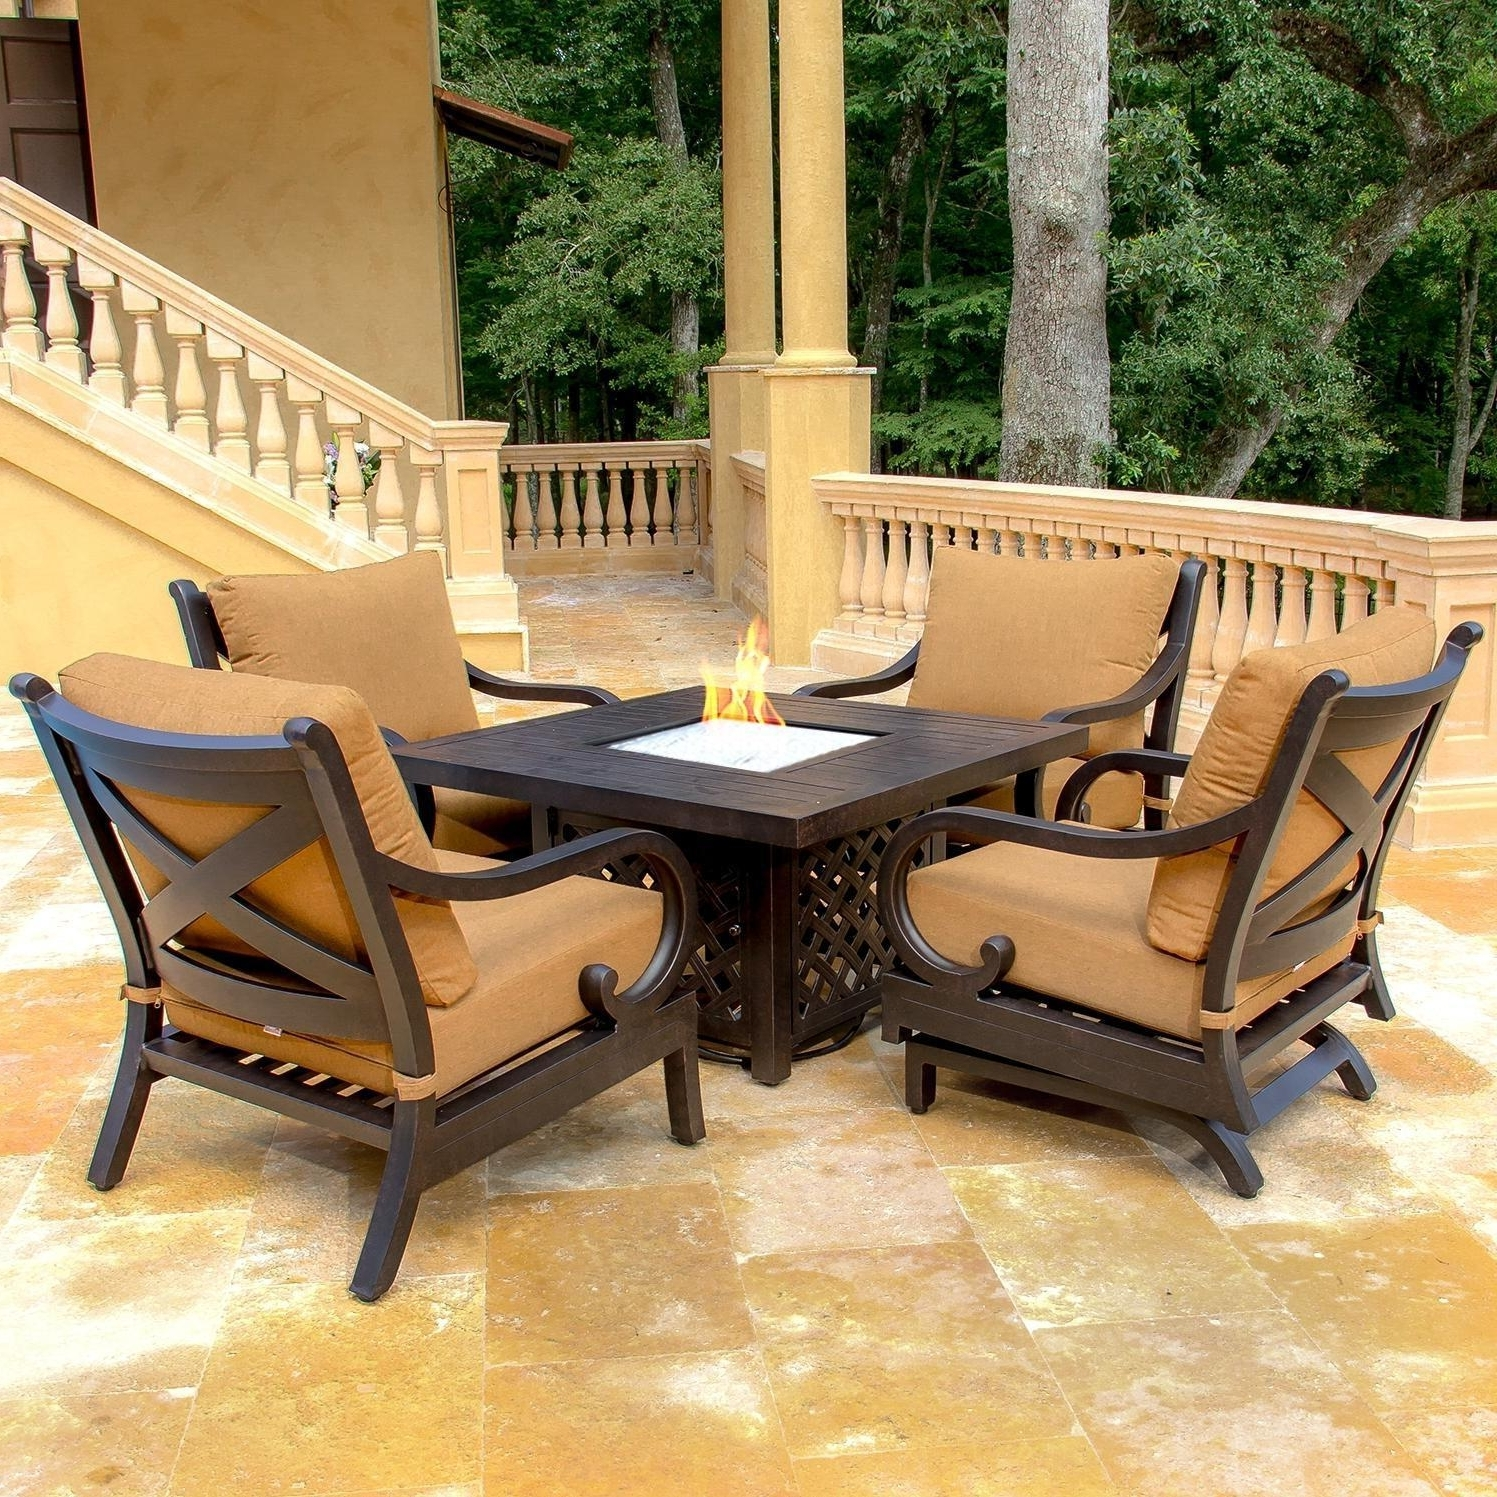 11 Patio Furniture Fire Pit (View 1 of 20)